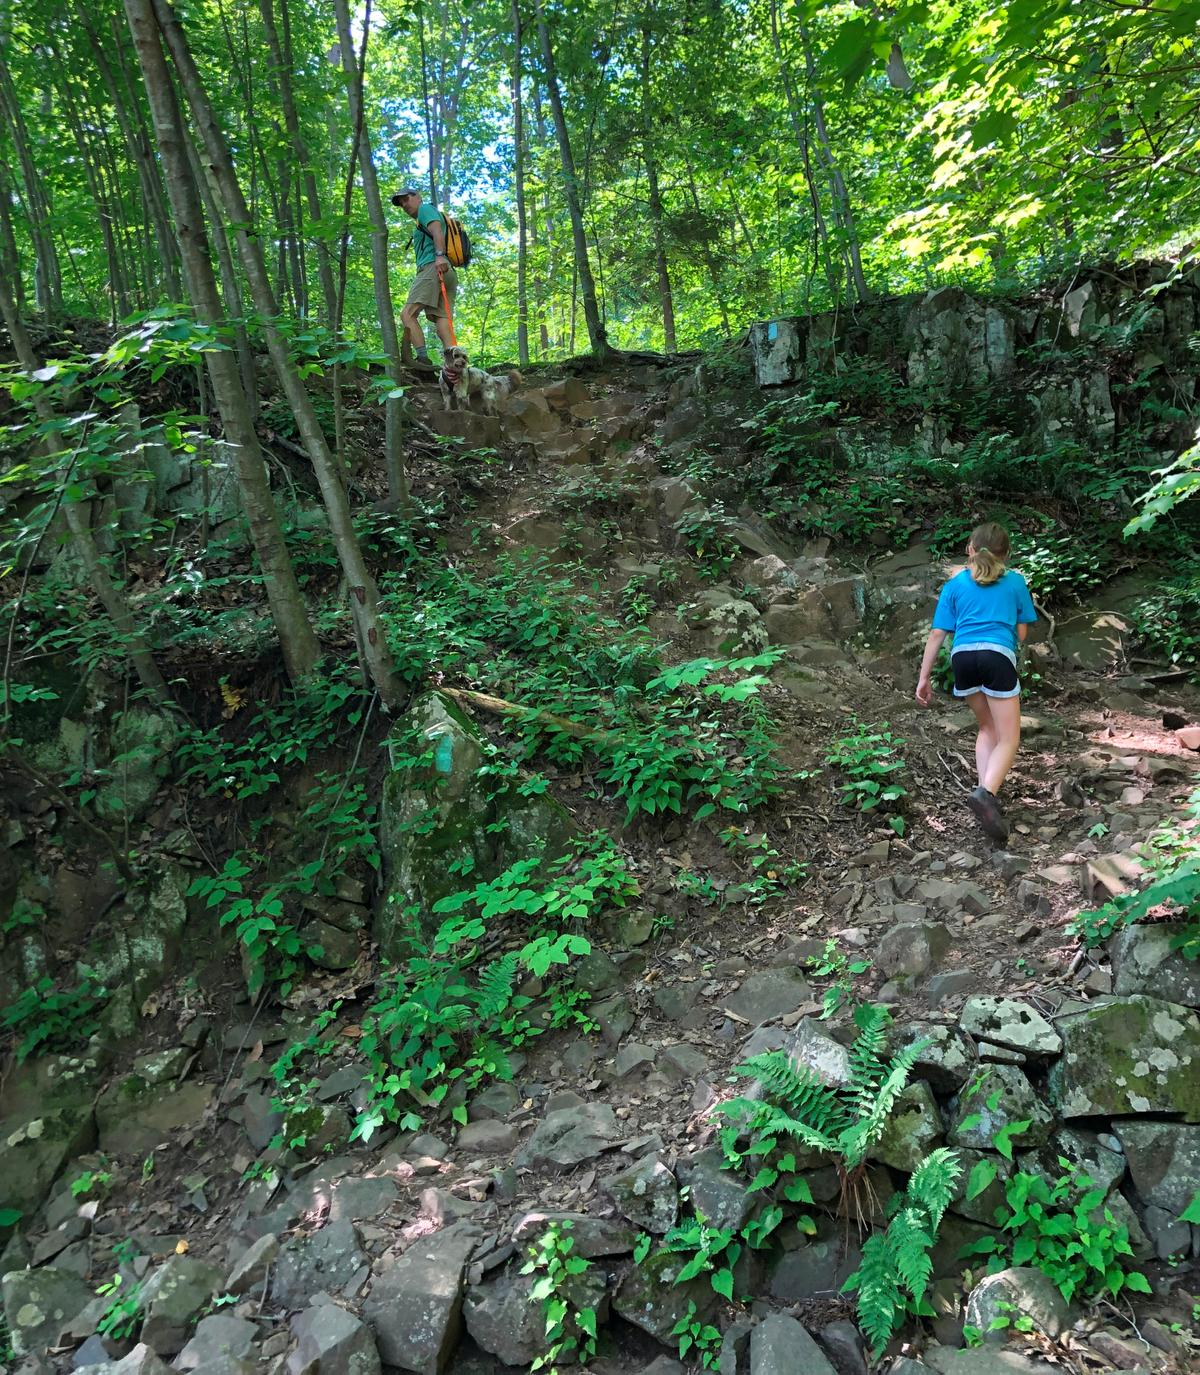 A girl climbs a trail with switchbacks